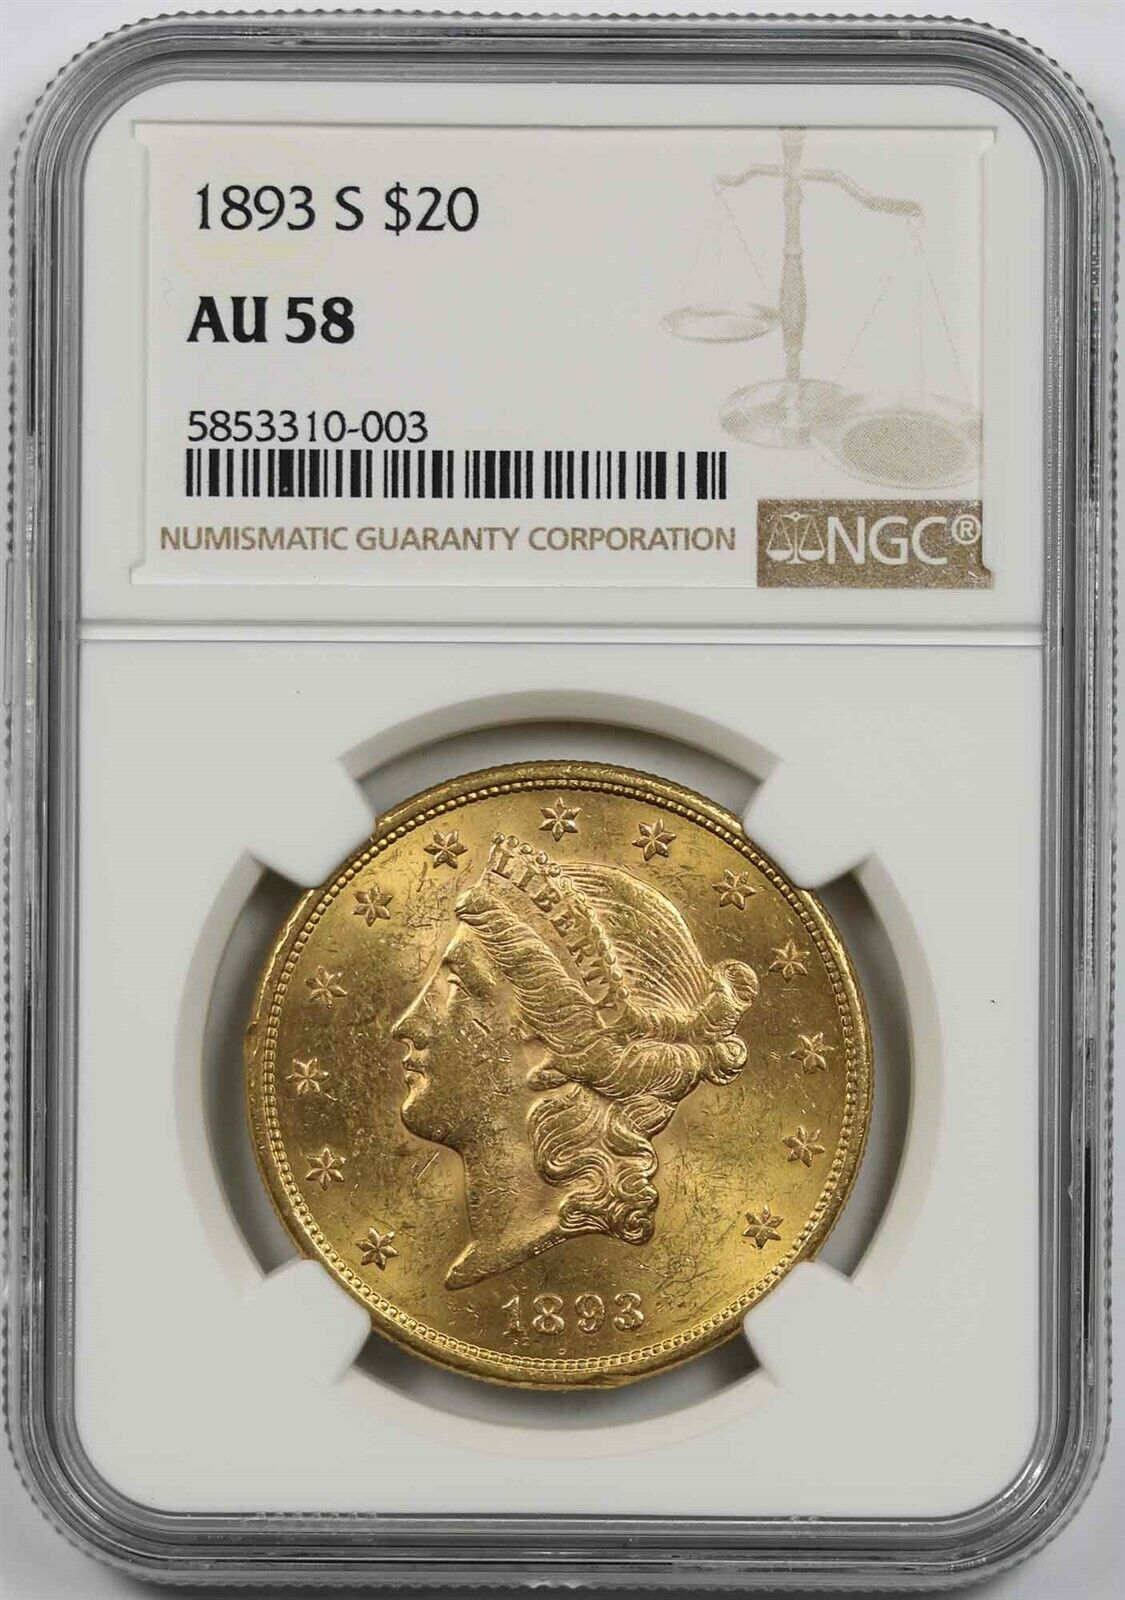 Proof-Like Coin! 1893 • $10 American Gold Eagle Liberty Head • NGC MS61 PL •